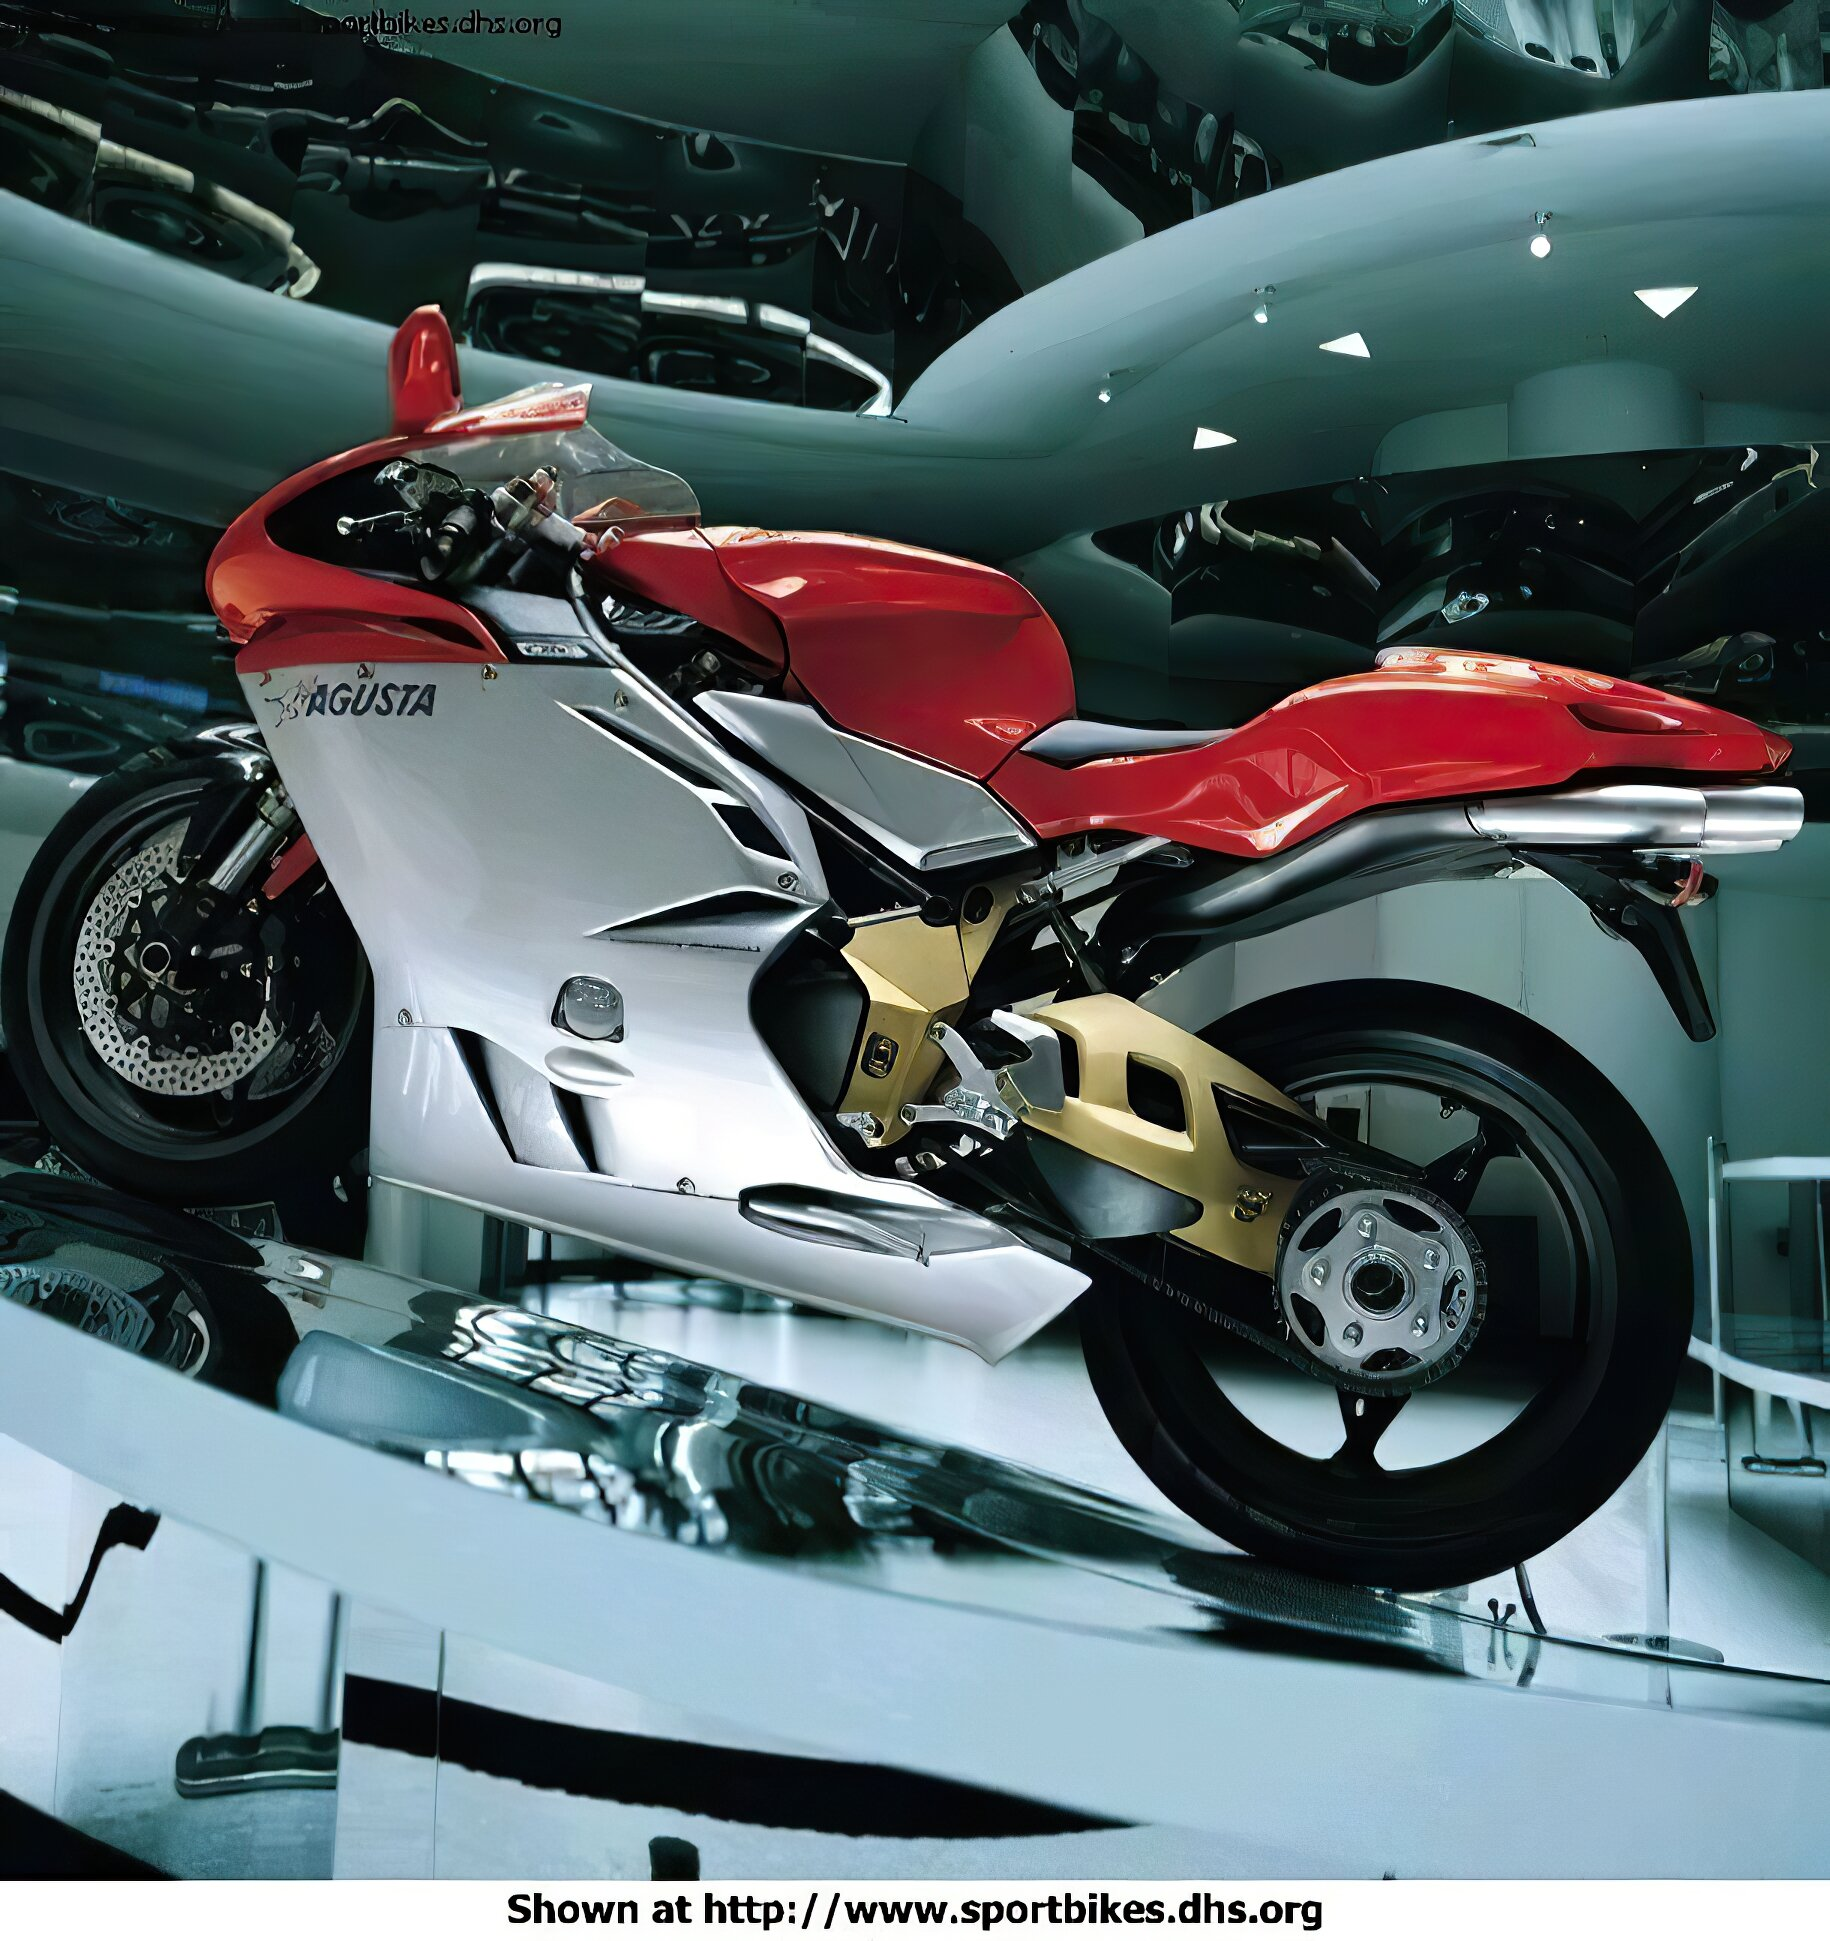 MV Agusta (all models) - ID: 4737